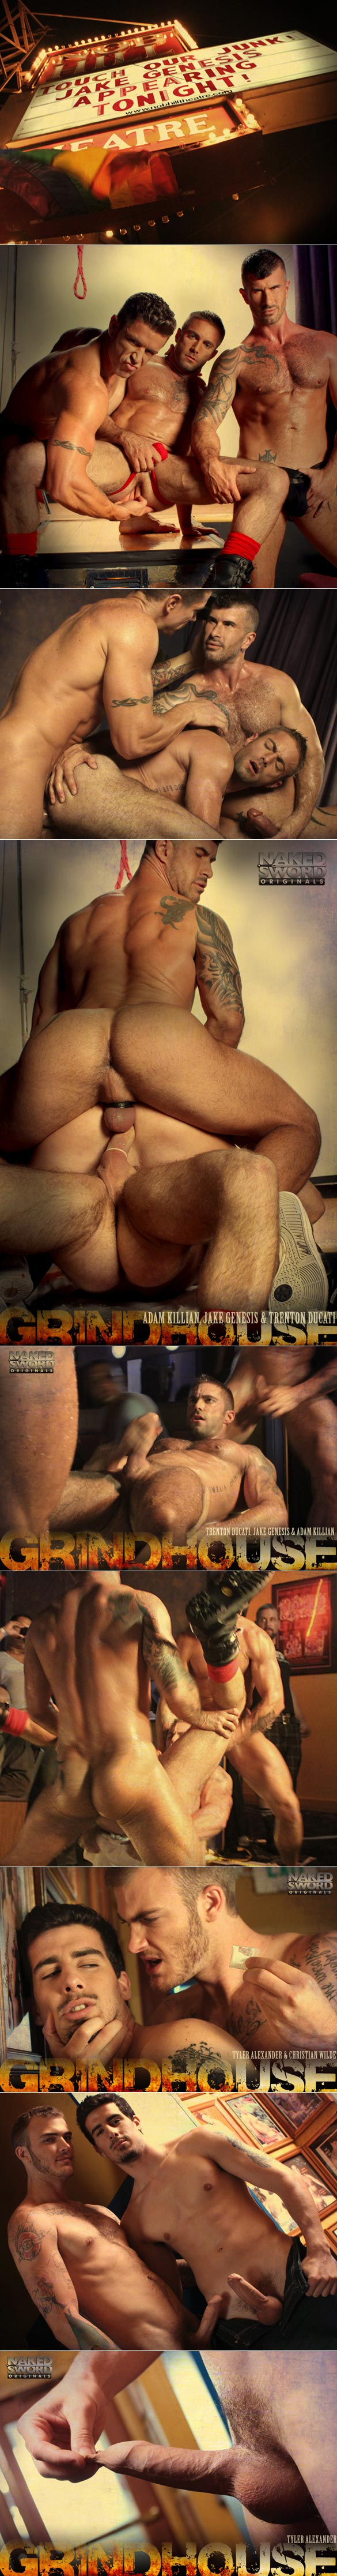 "NakedSword Originals: ""Grindhouse"""